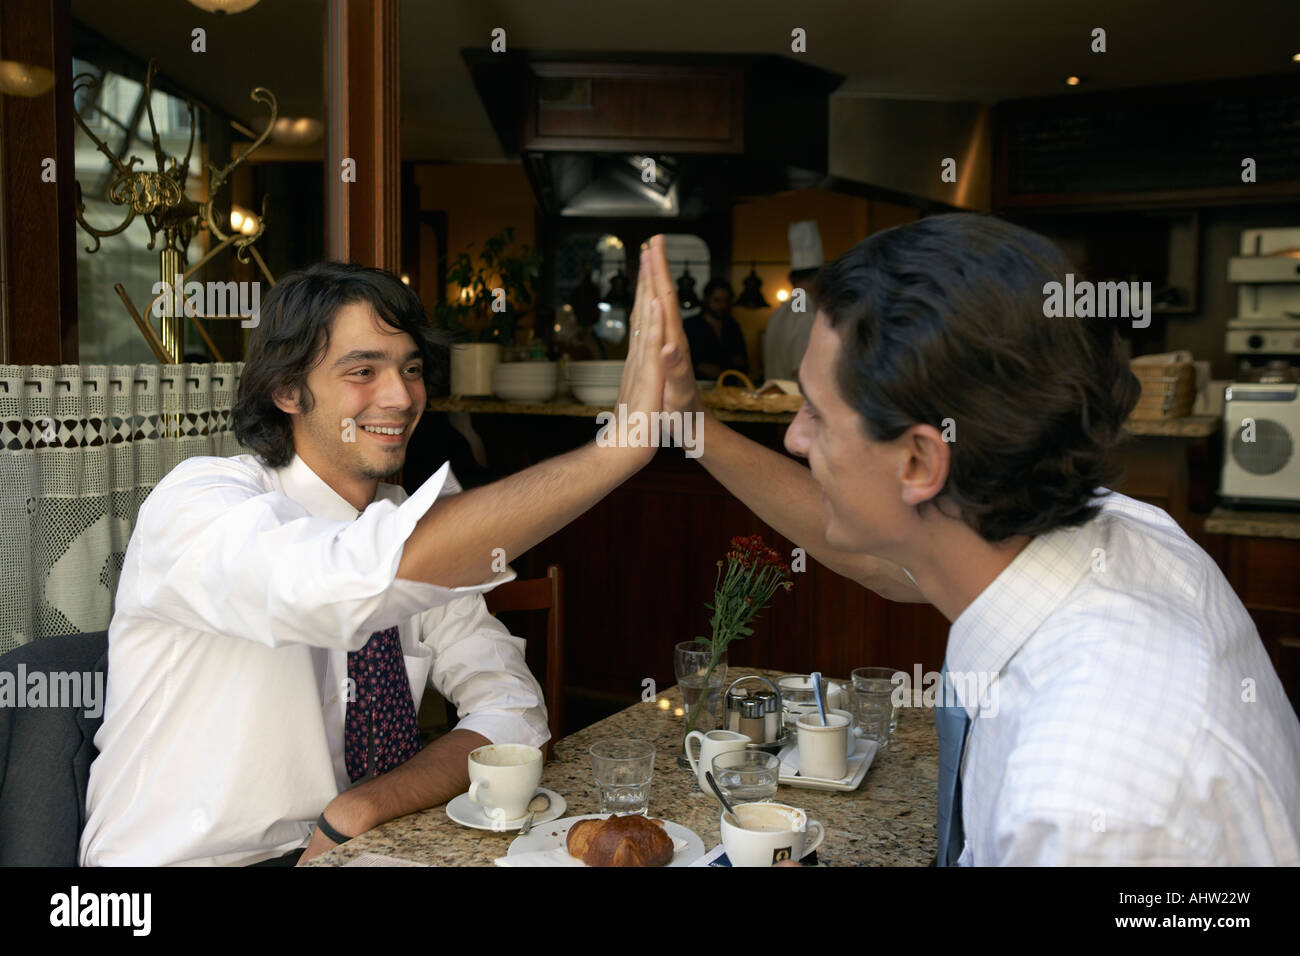 Businessmen giving a high five to each other. - Stock Image